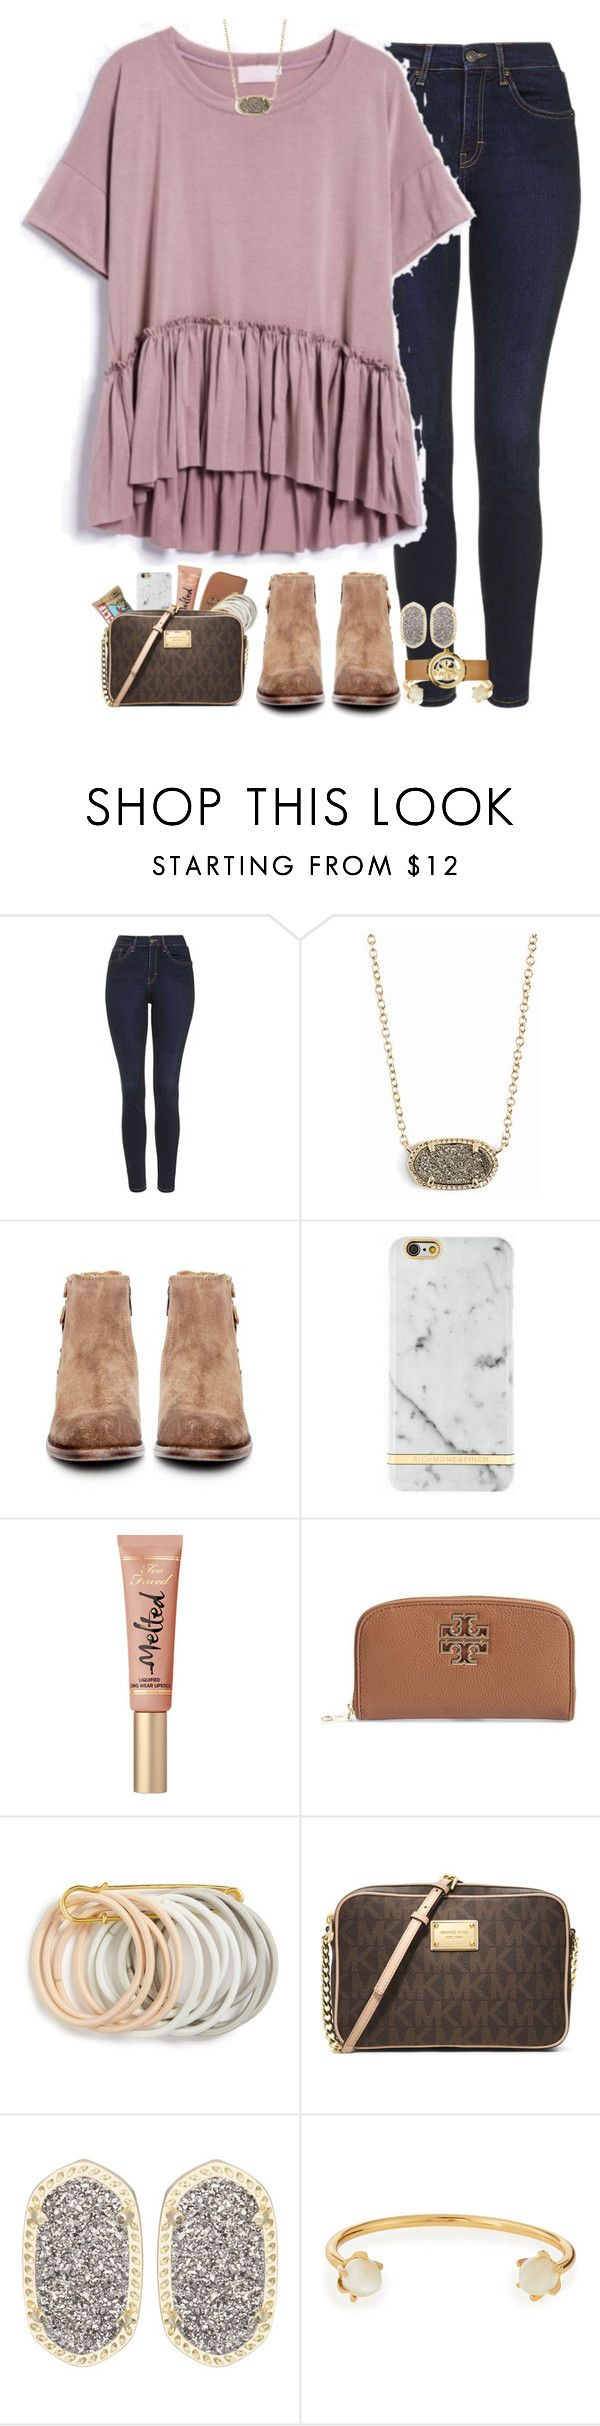 """ugh I'm so sunburnt"" by hmcdaniel01 ❤ liked on Polyvore featuring Topshop, Kendra Scott, H by Hudson, Tory Burch, Odeme, MICHAEL Michael Kors and Lizzie Fortunato"